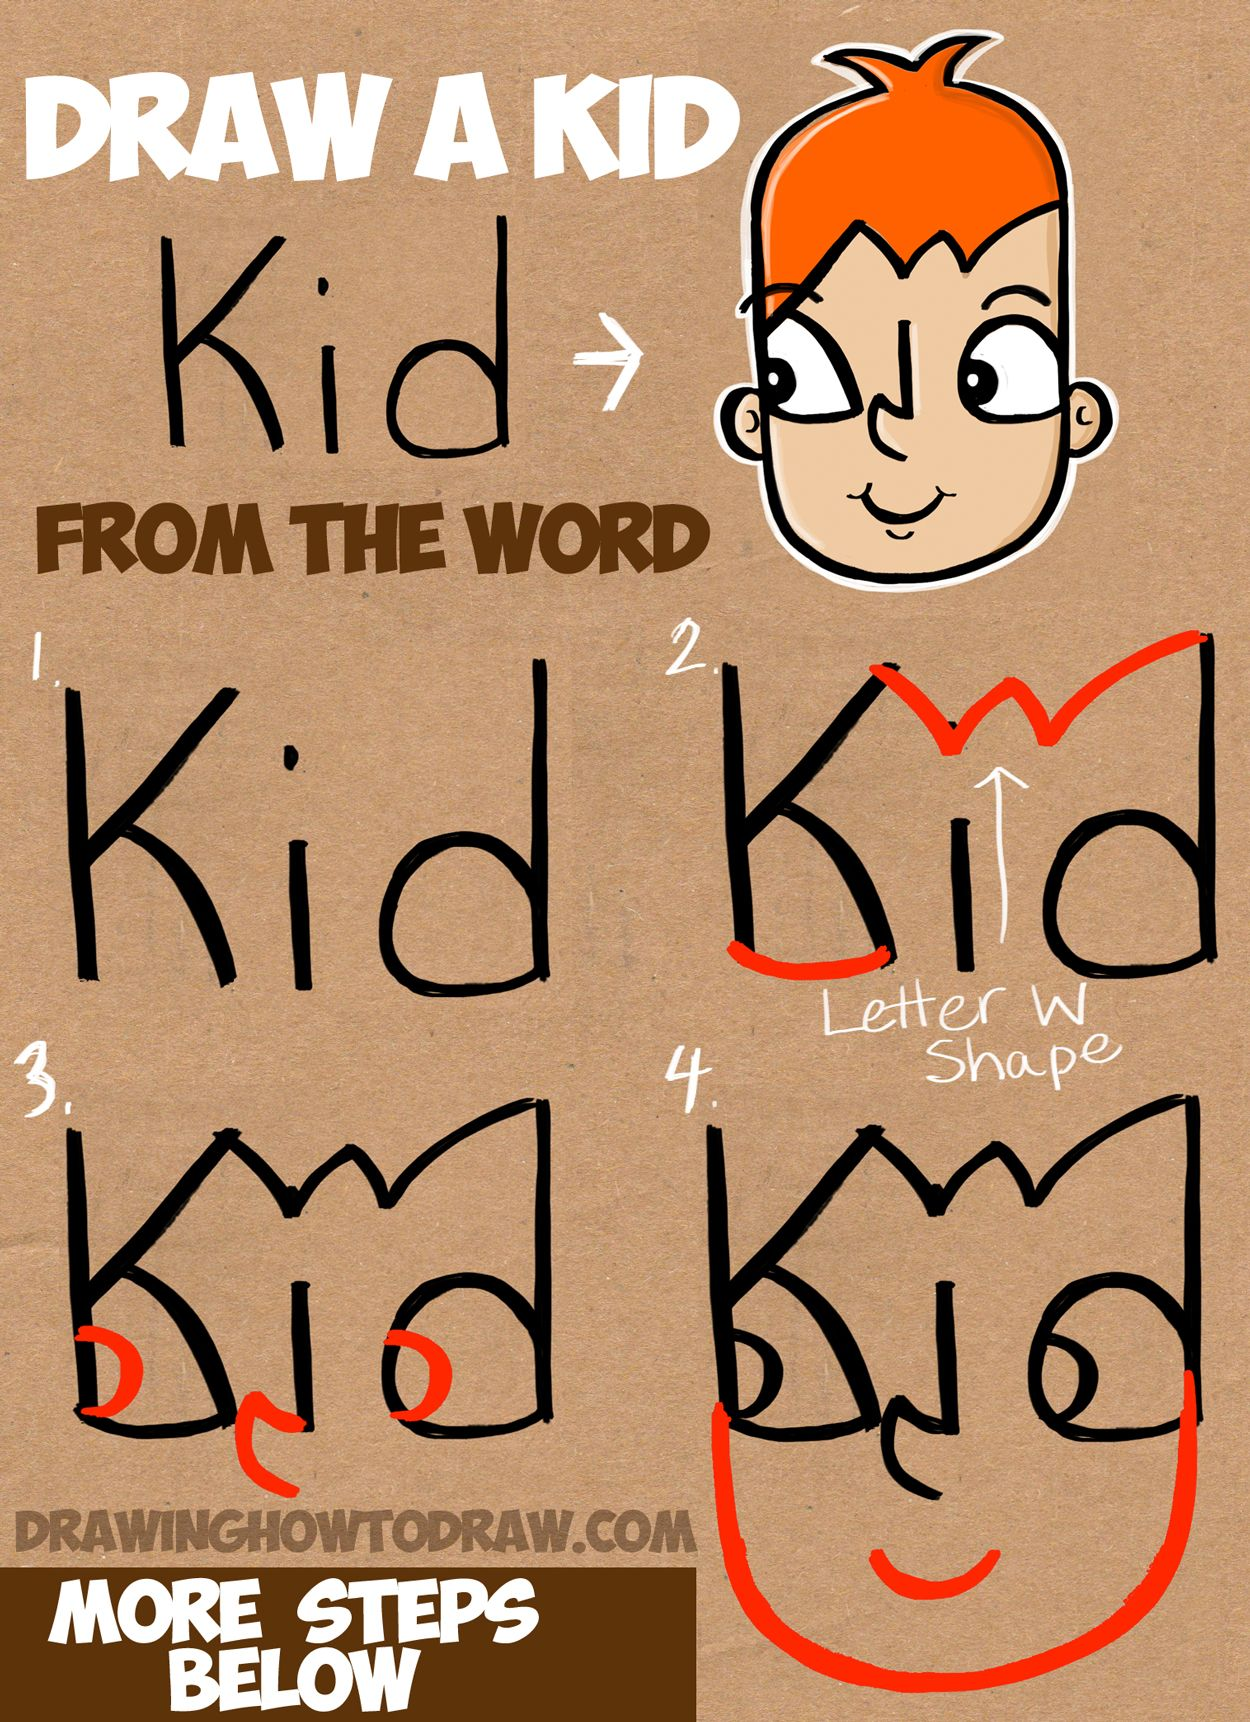 How To Draw A Cartoon Kid From The Word Kid Easy Tutorial For Kids